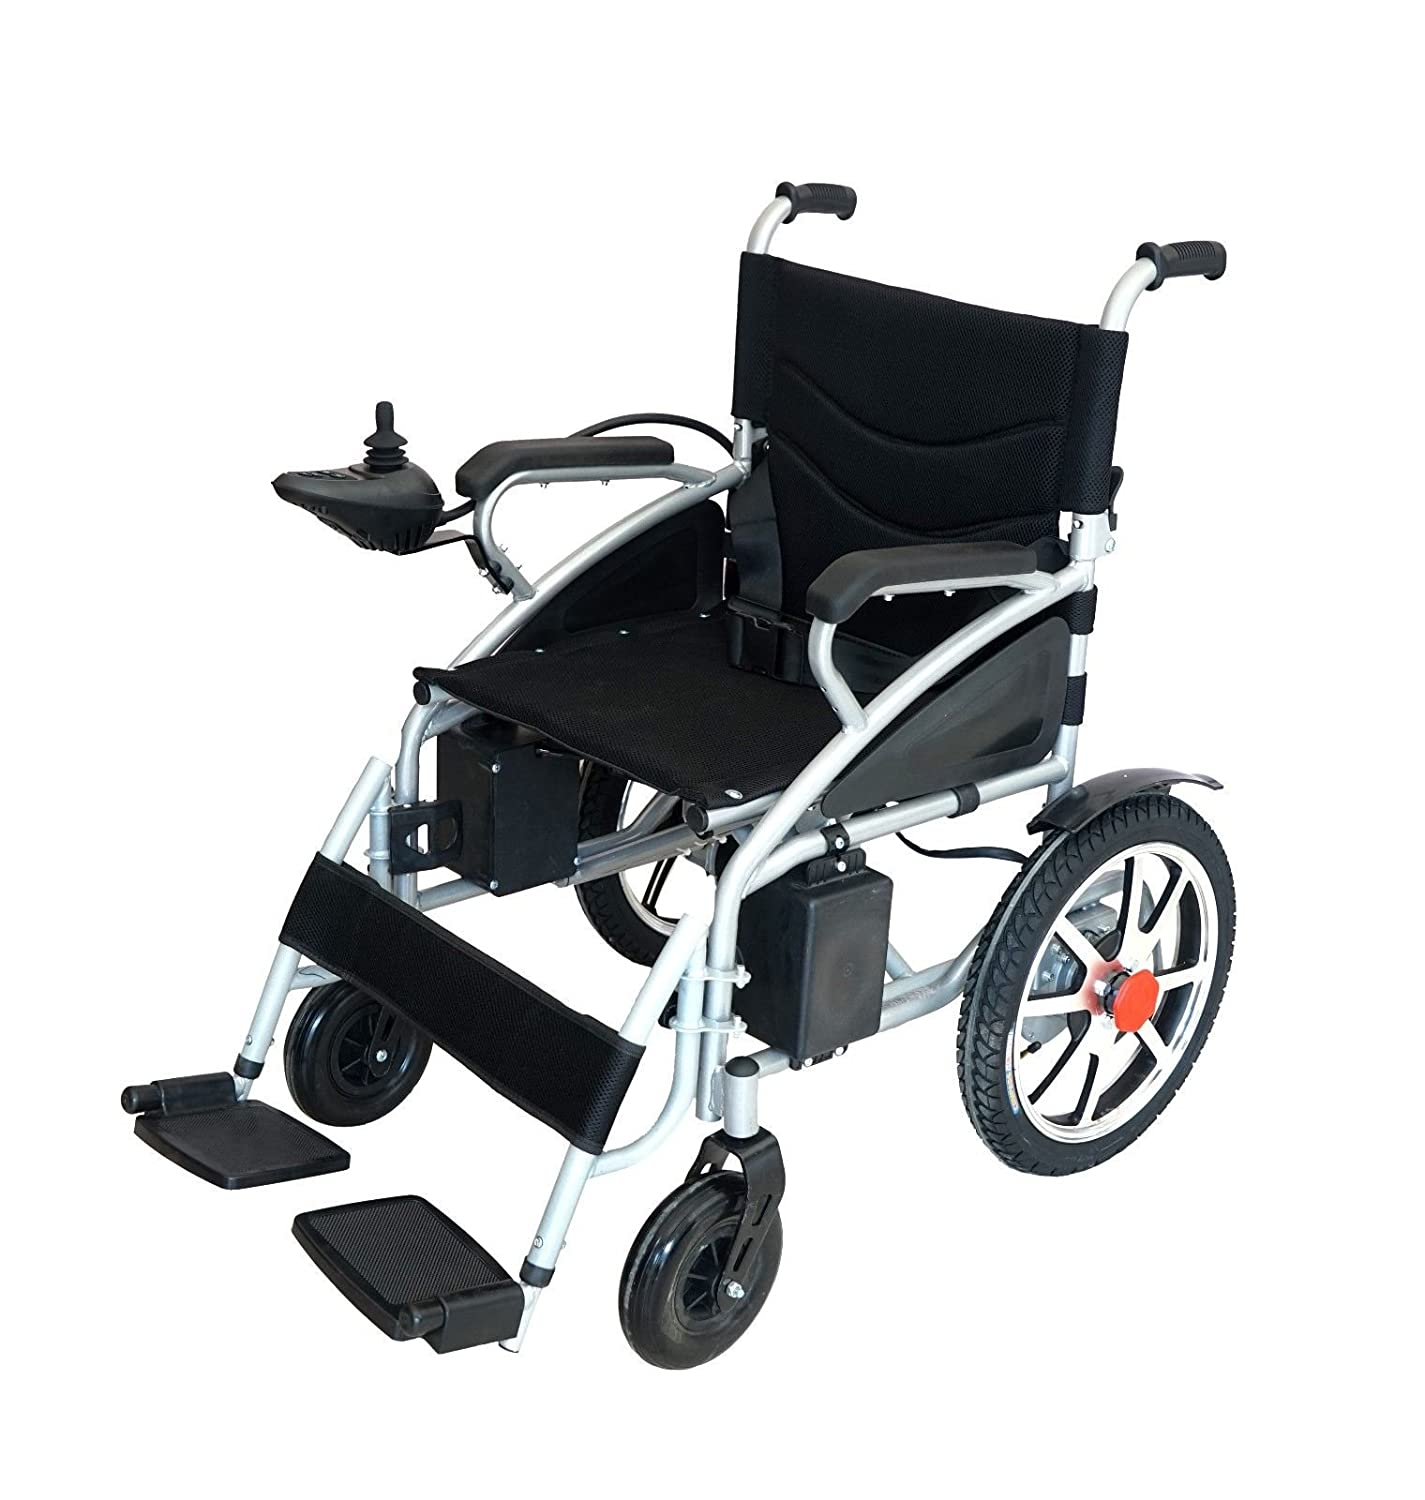 Amazon.com: Thrive Mobility Motorized Mobile Wheelchairs for ...